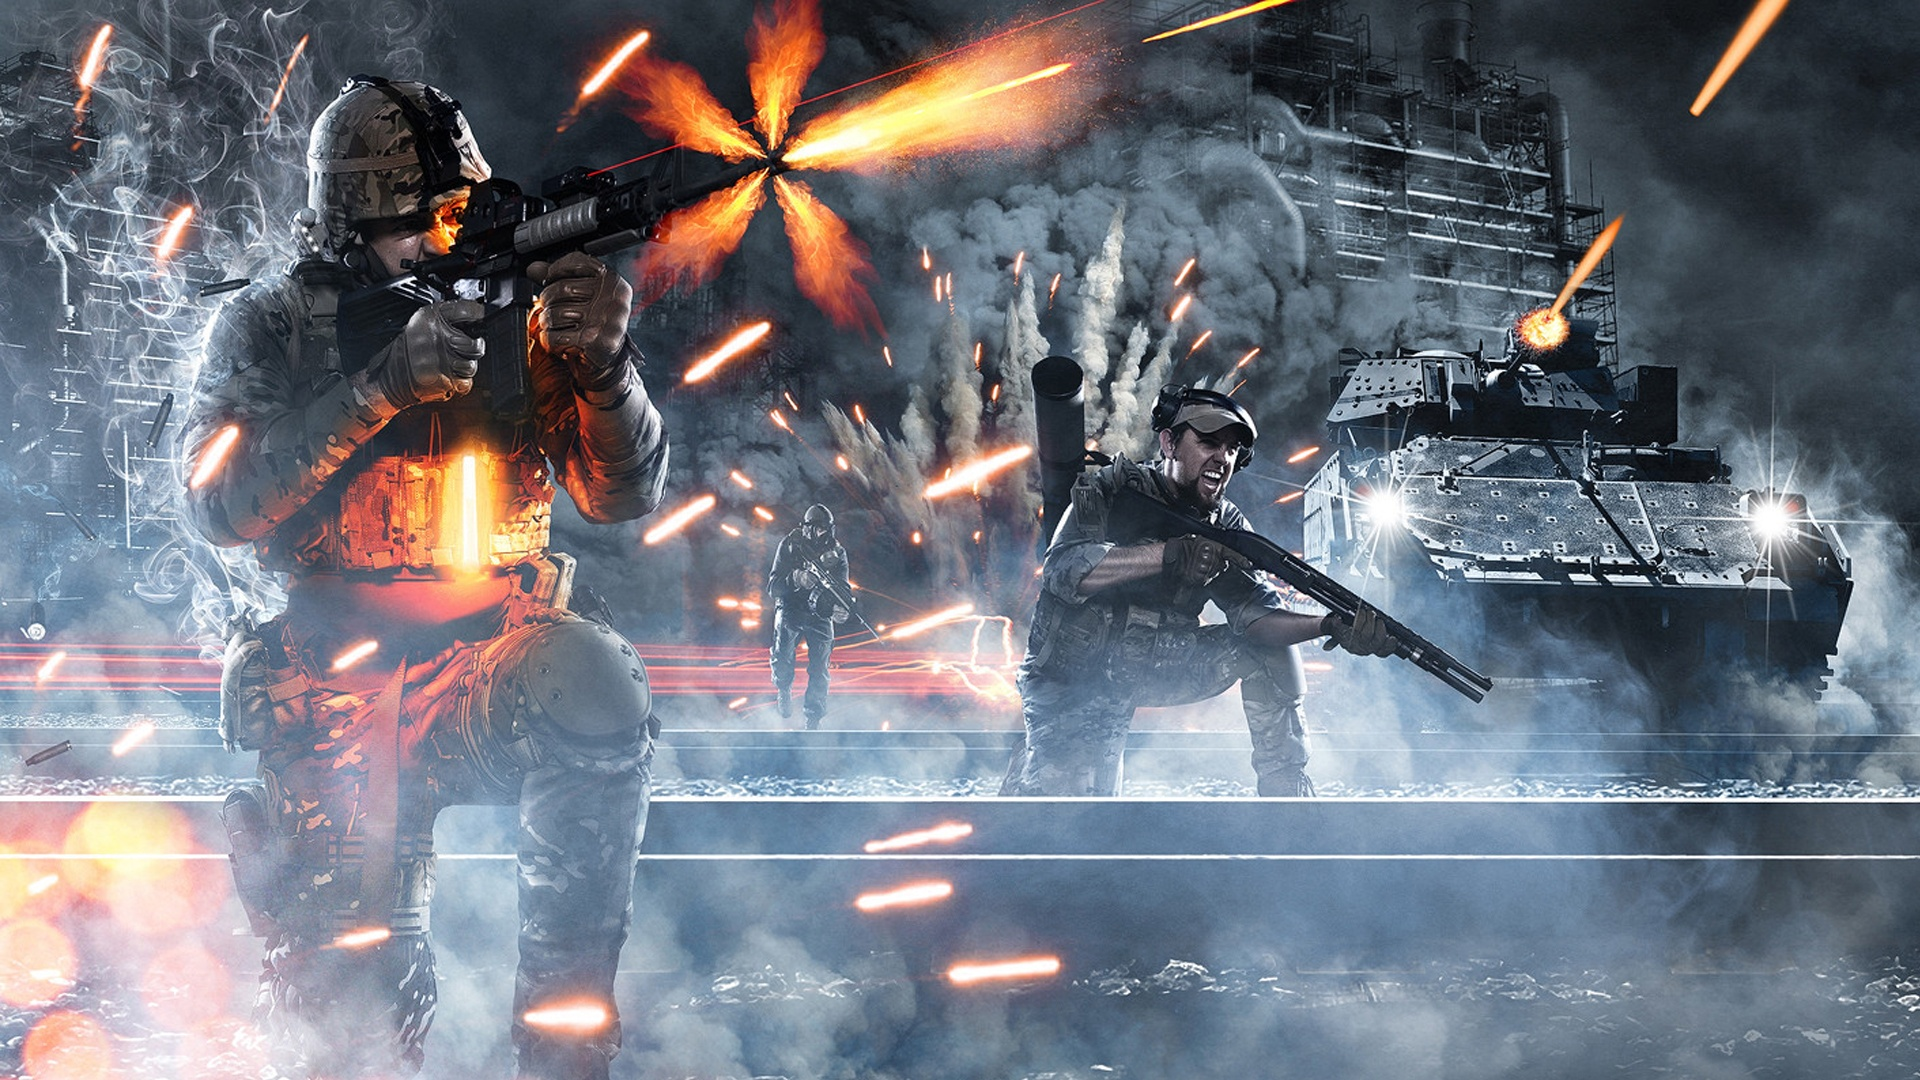 1536x2048 battlefield 4 wallpaper - photo #17